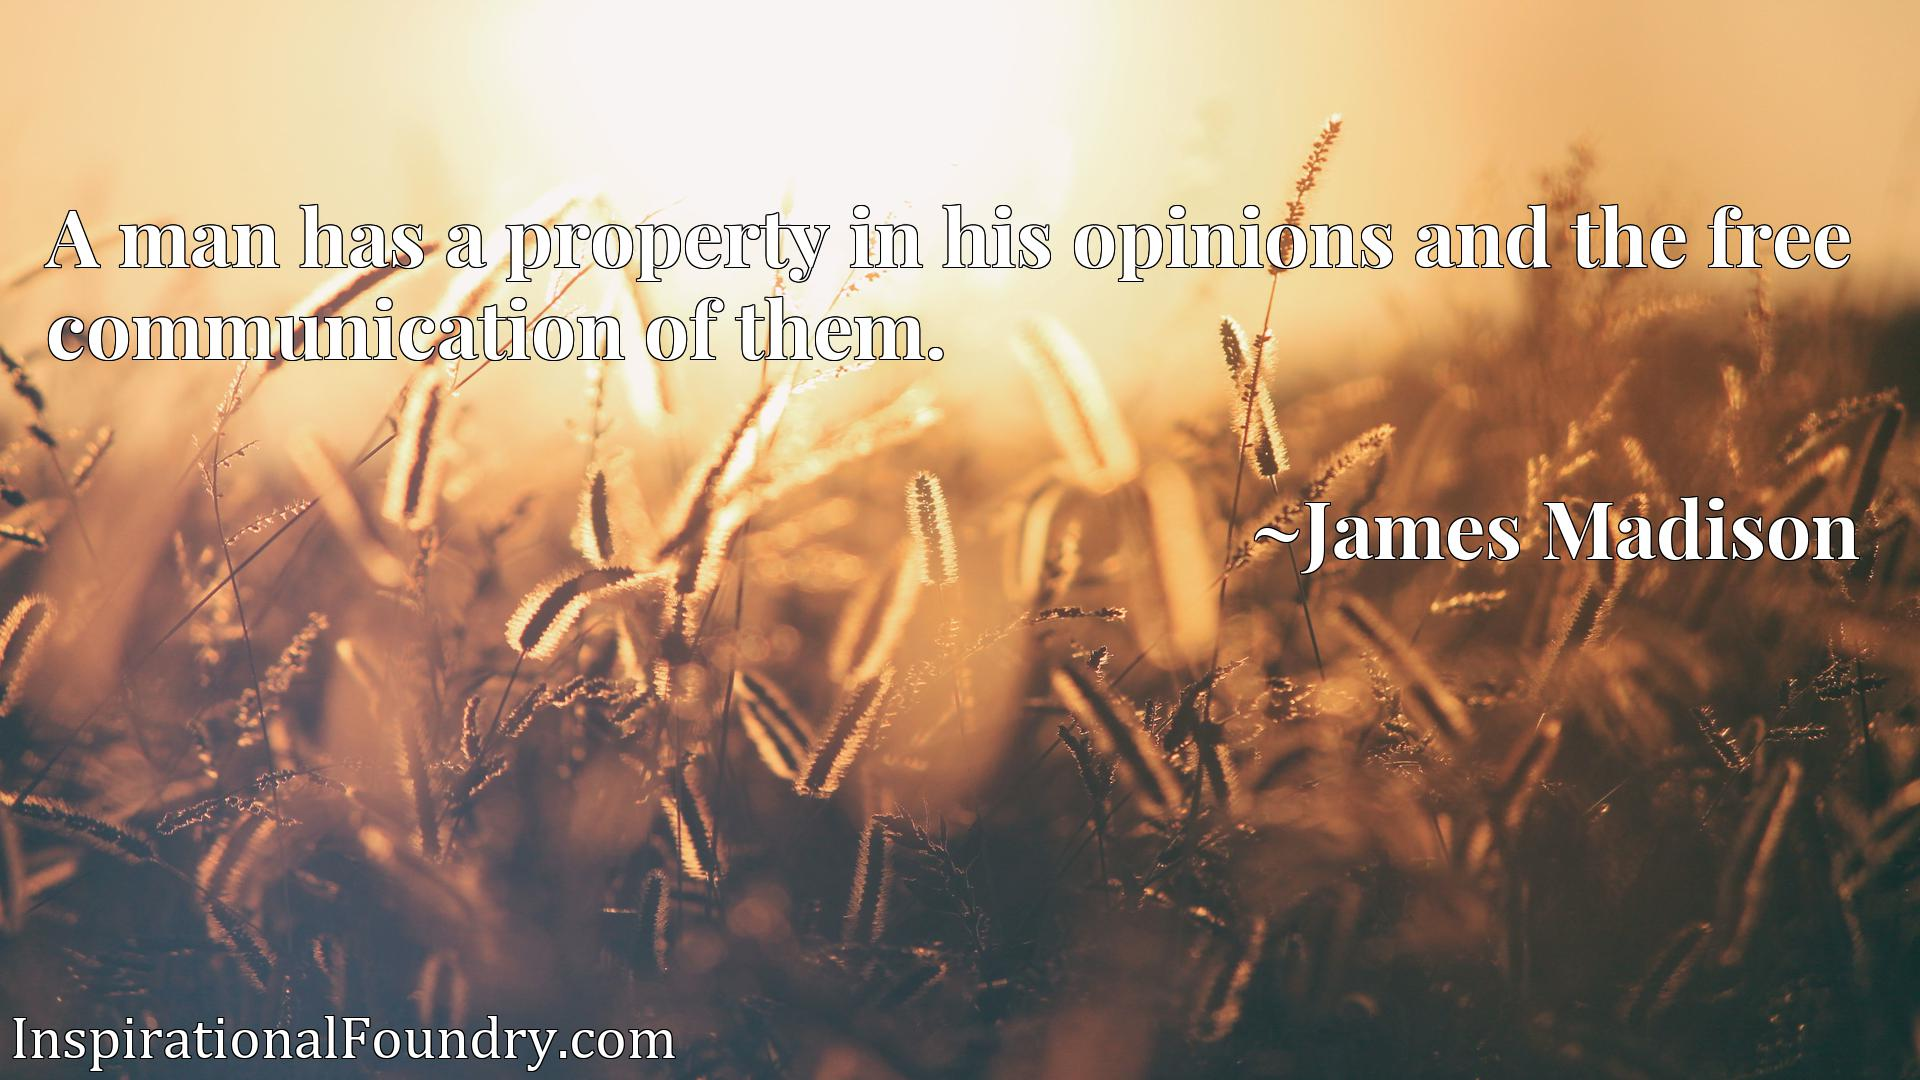 A man has a property in his opinions and the free communication of them.